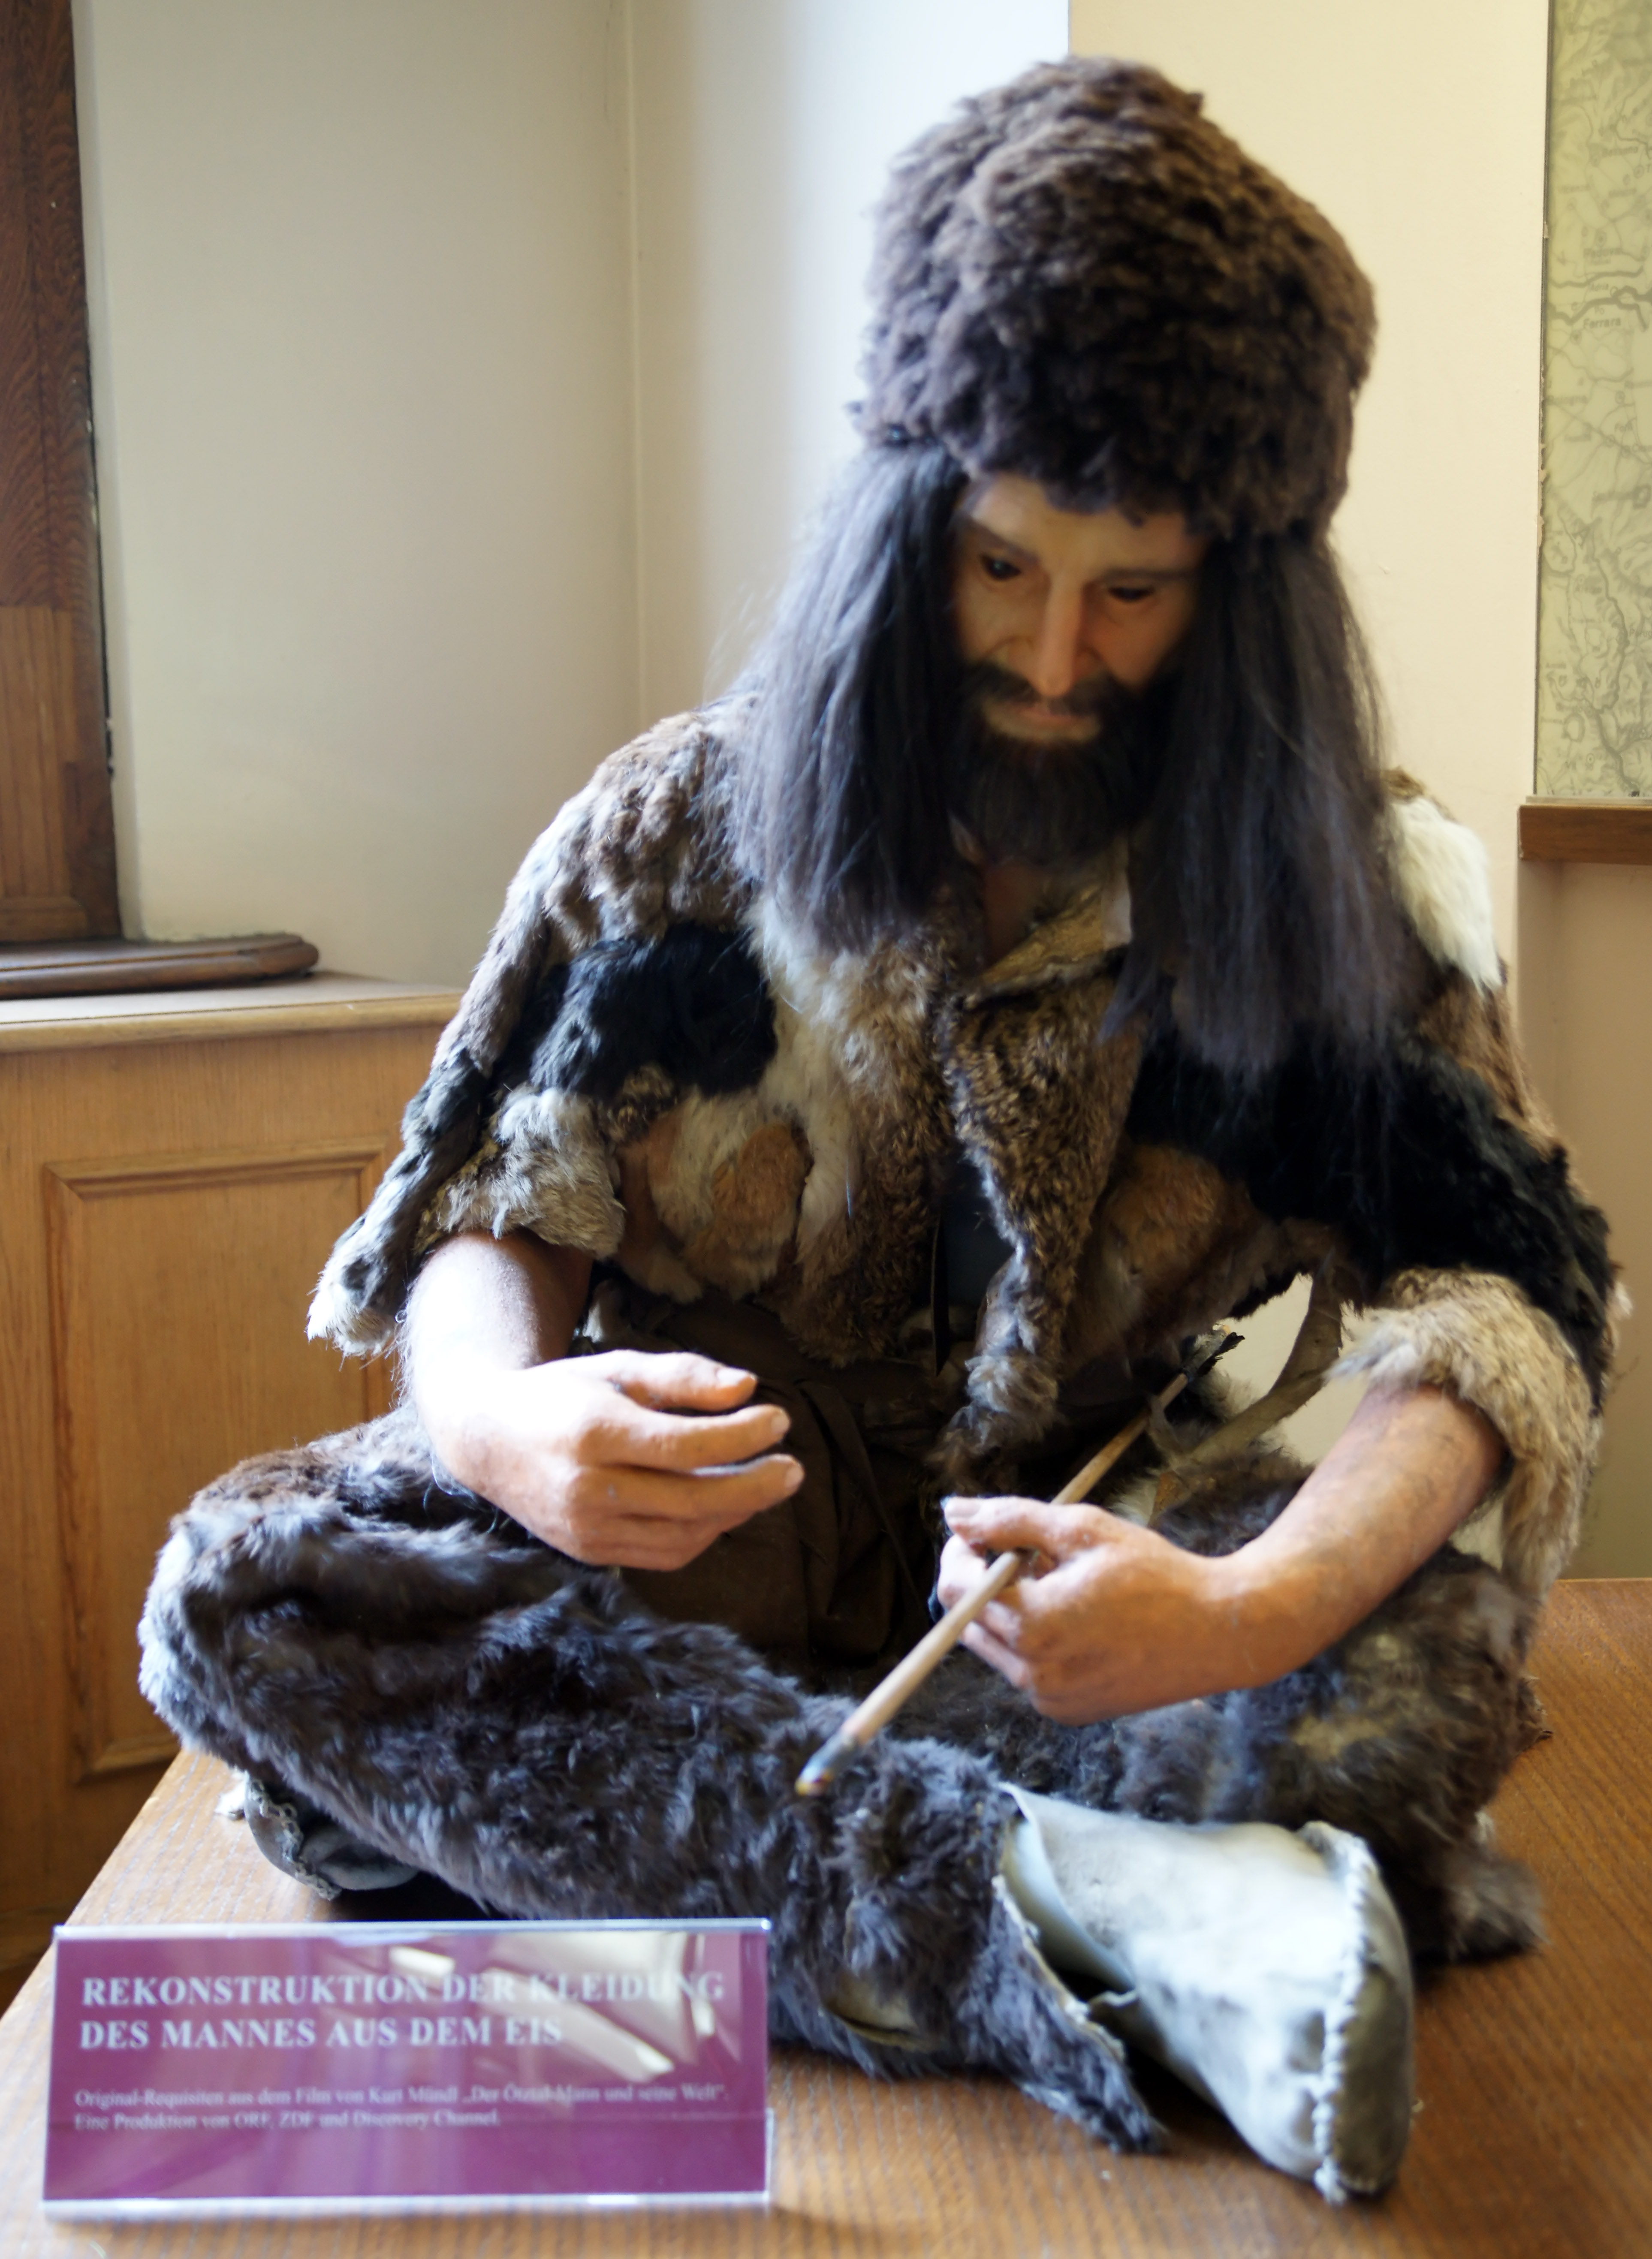 tzi the iceman and the lifestyle of bronze age people During the bronze age, tribes waged war on mountain peaks scientists have a recent claim that otzi may have been a human sacrifice or he may have been a warrior or the victim of an ambush who fought hard to save his life.